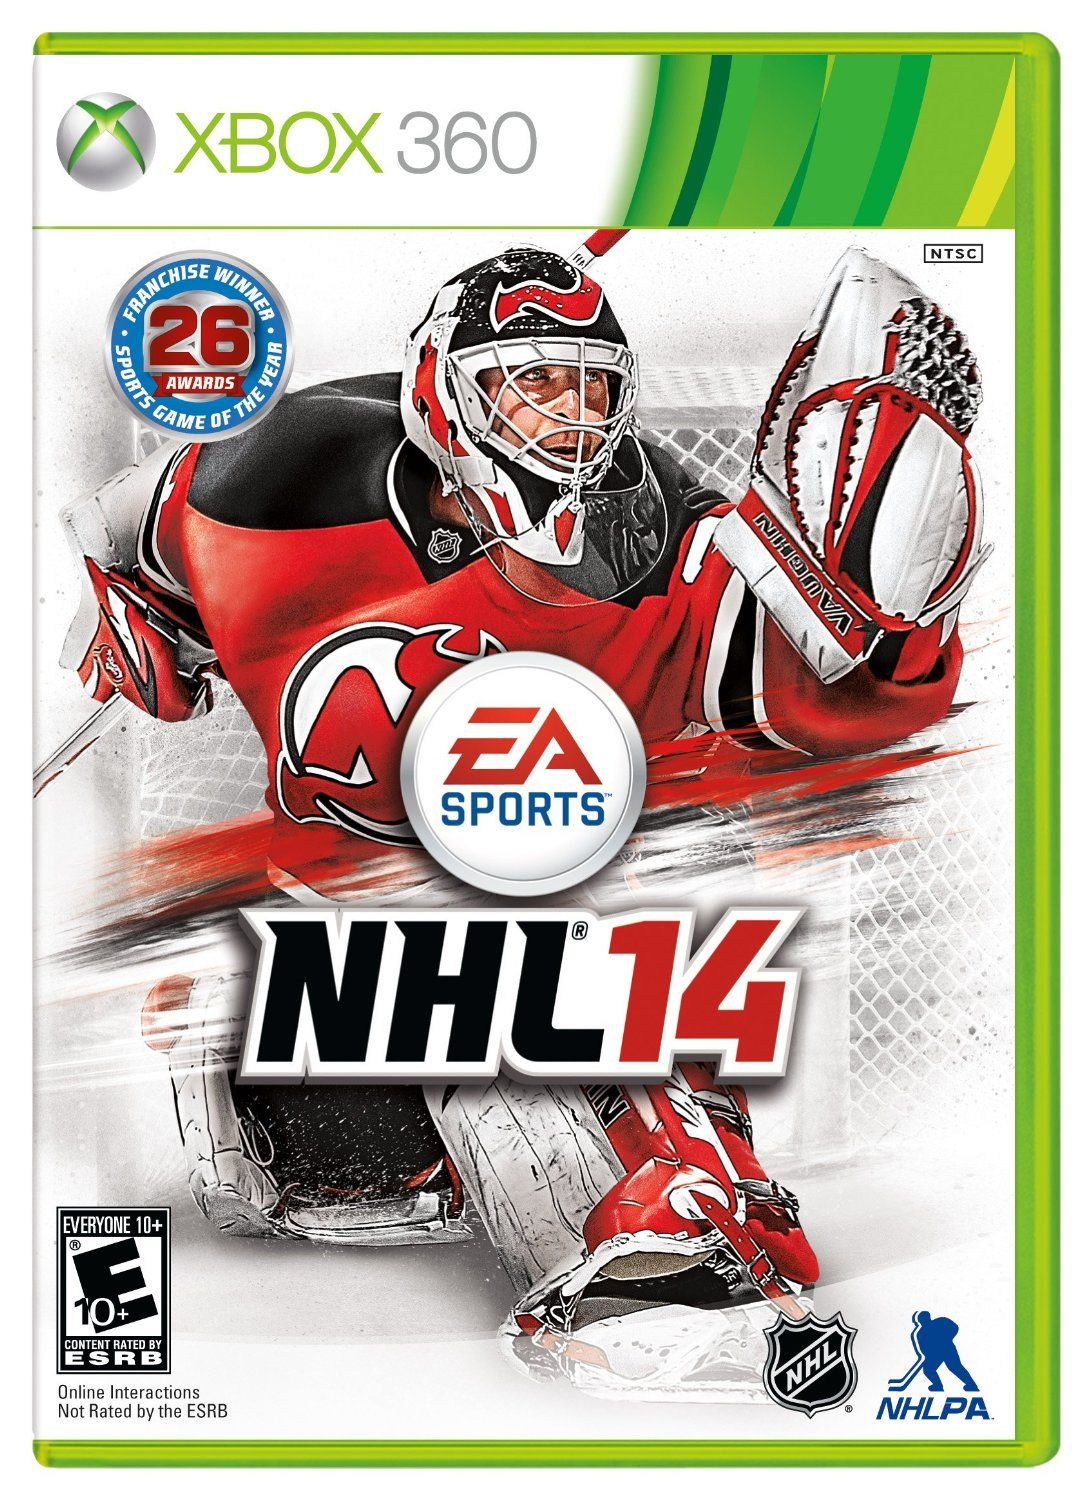 Nhl 14 Xbox 360 60 00 Sports Games For Kids Video Games Xbox Xbox